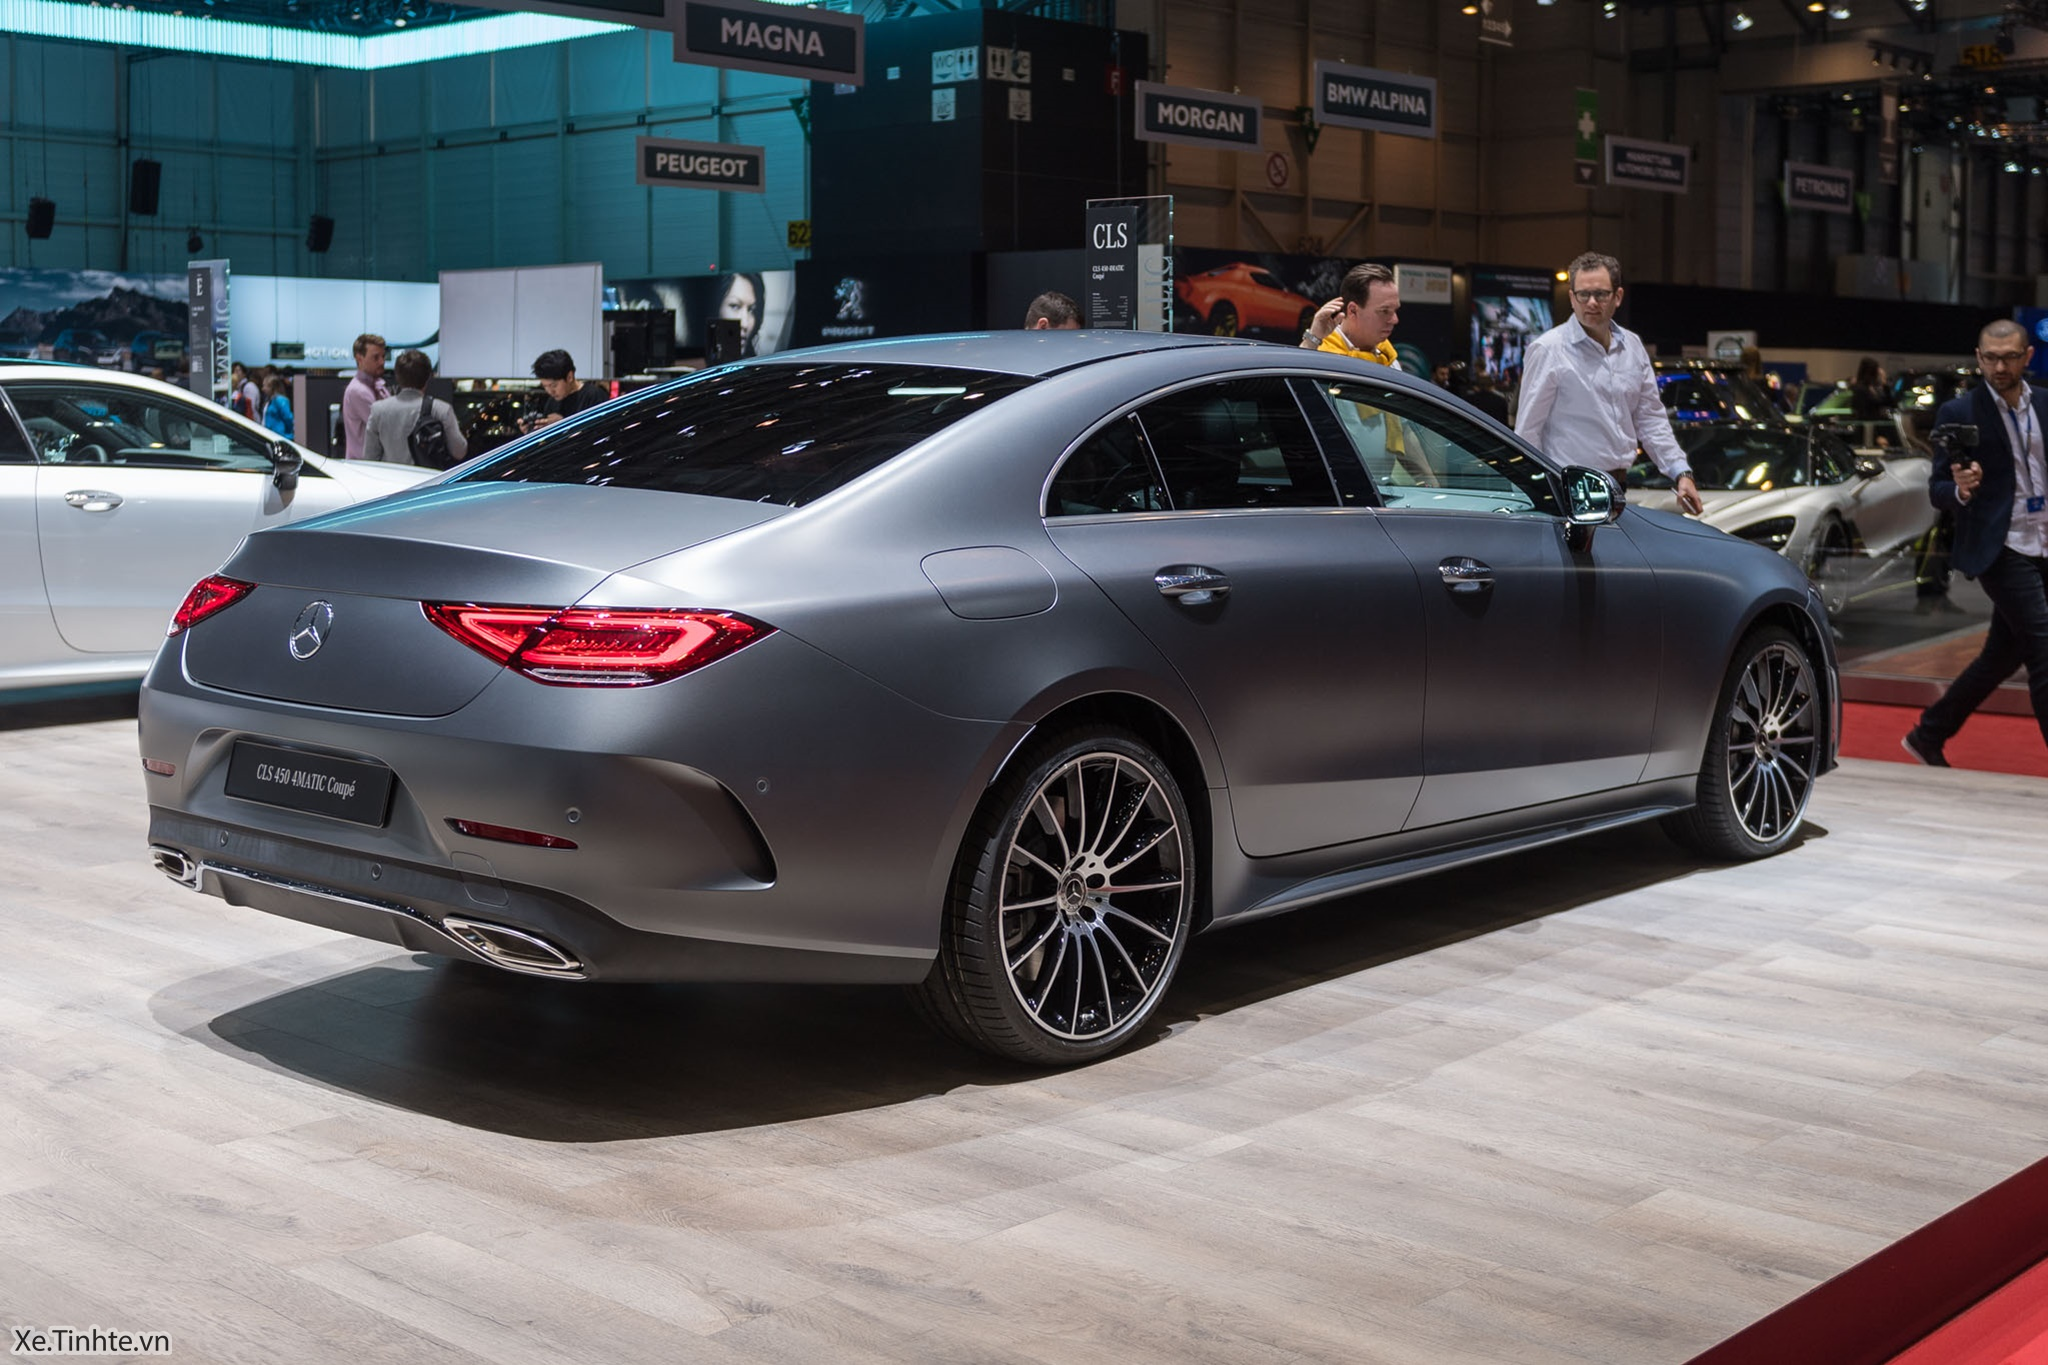 Mercedes_CLS_450_4MATIC_Coupe_Xe_Tinhte-001.jpg